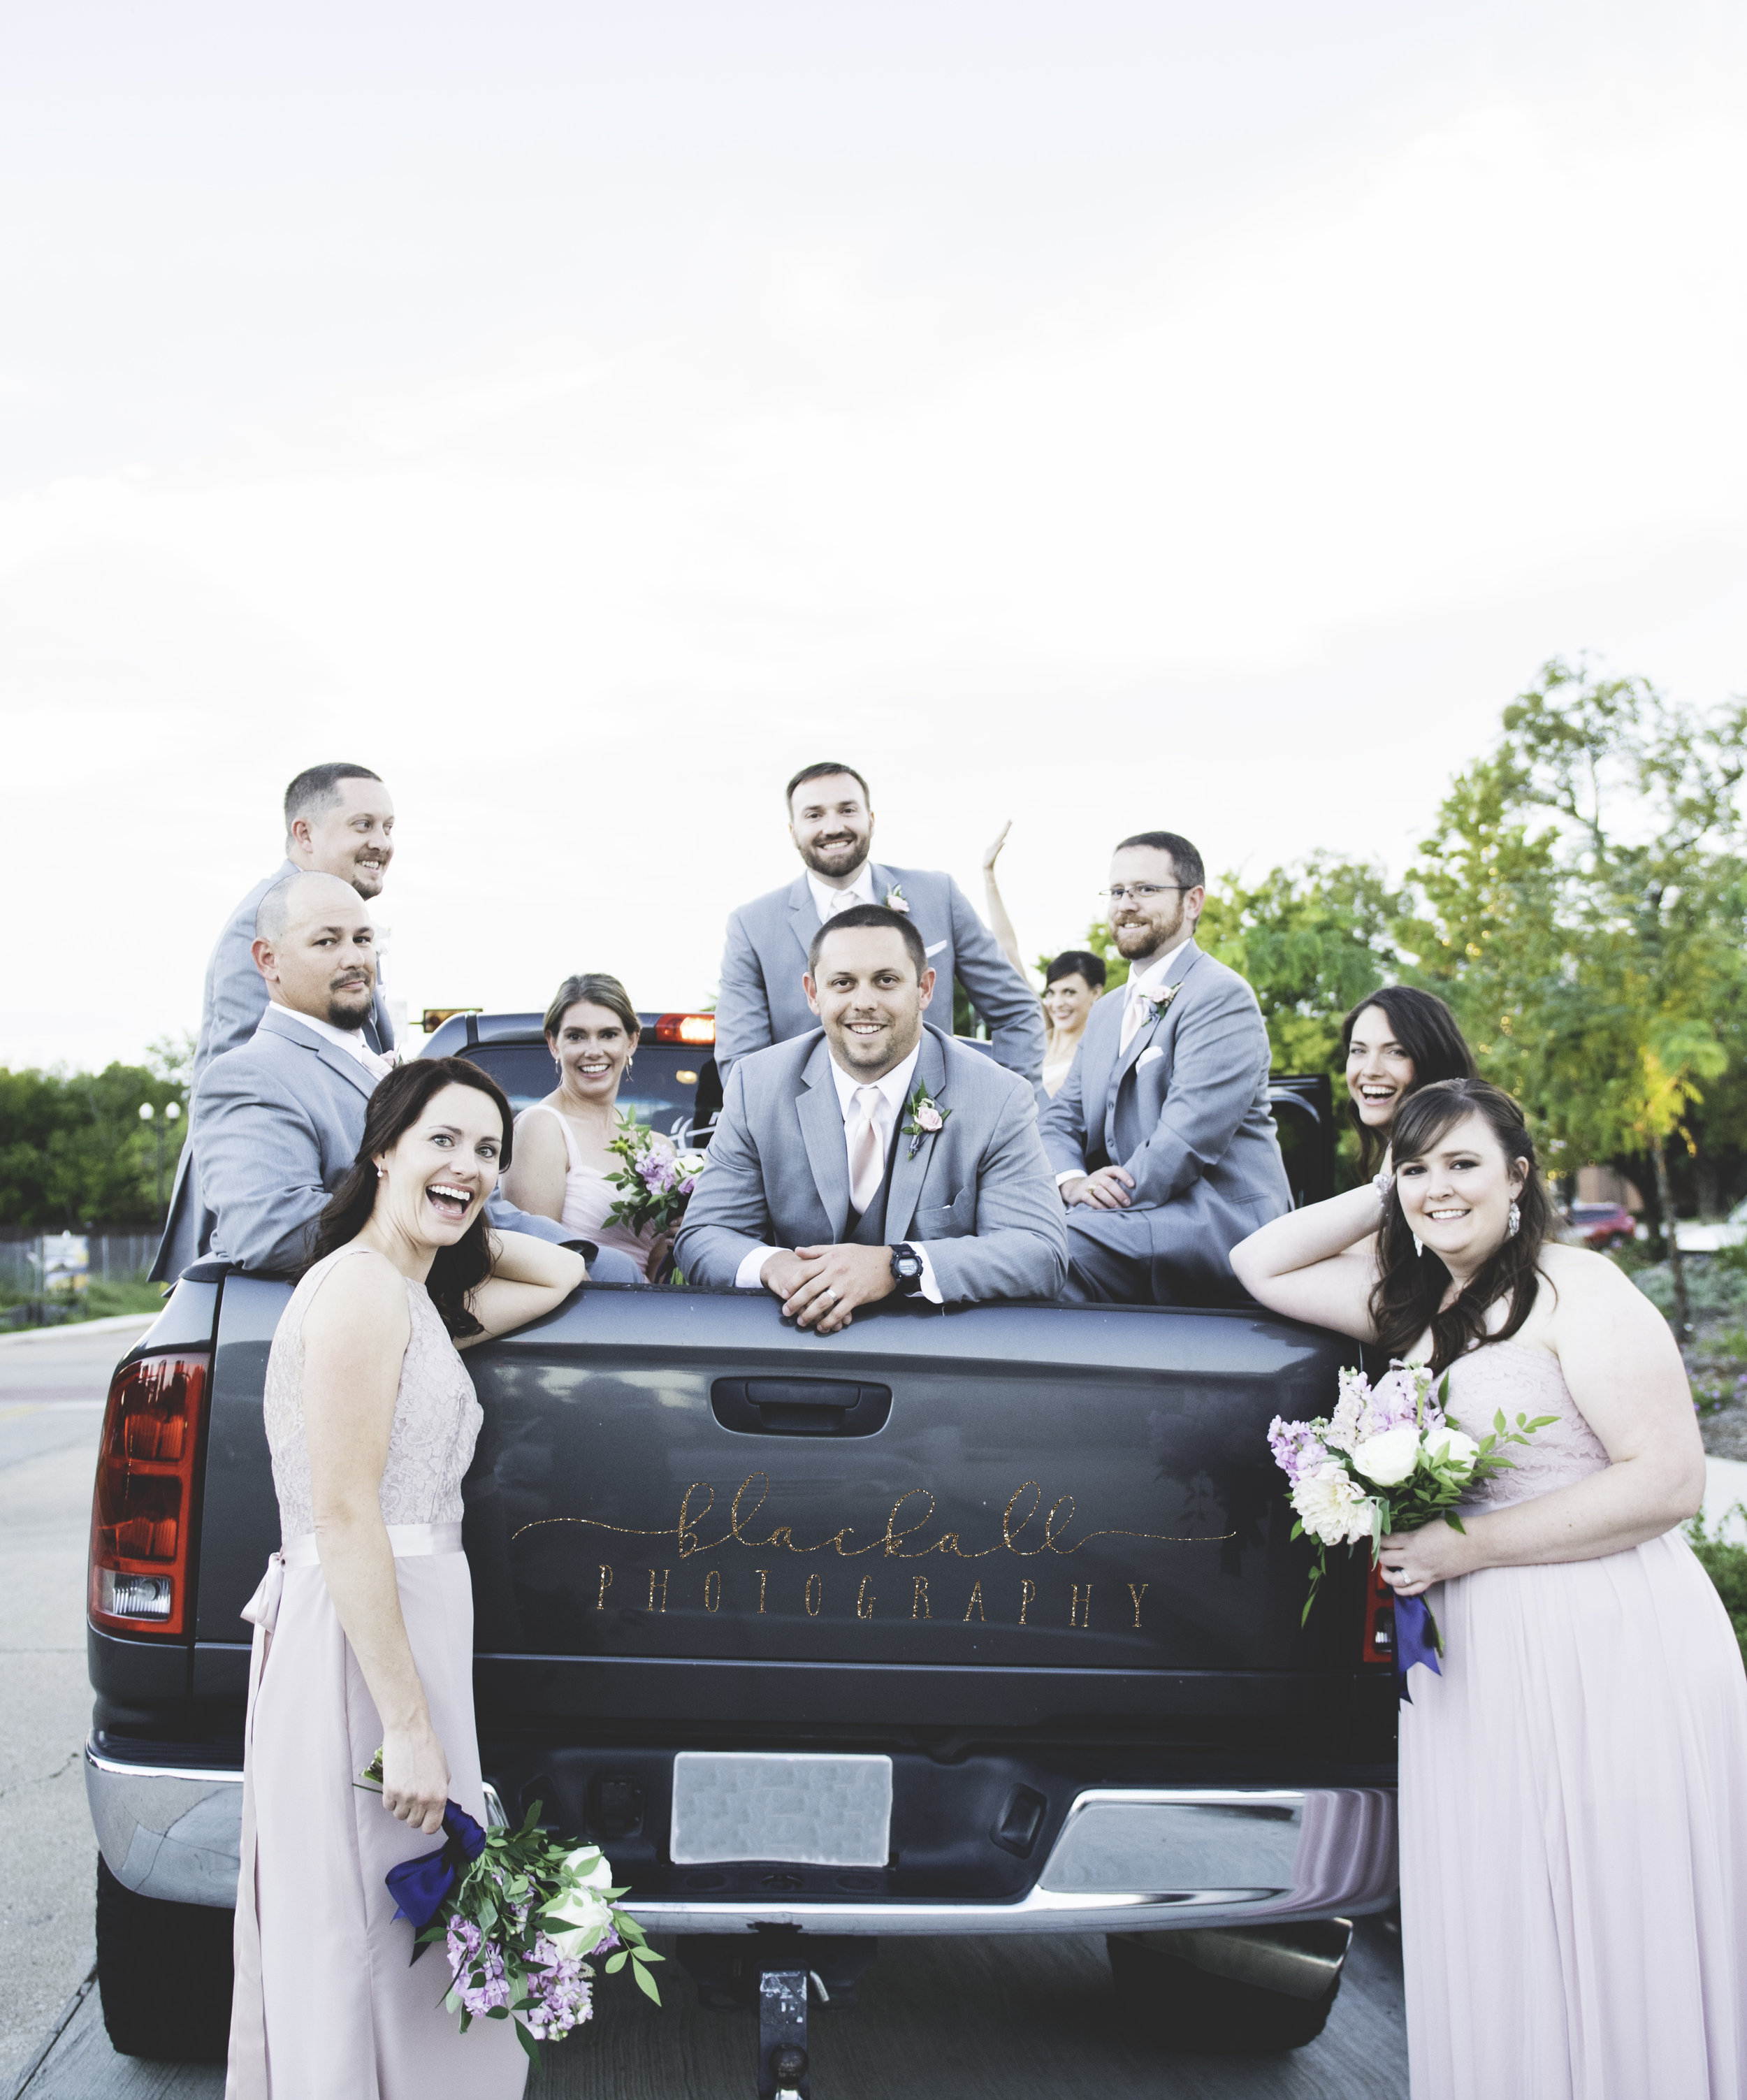 Wedding Party transportation provided by yours truly! ;)